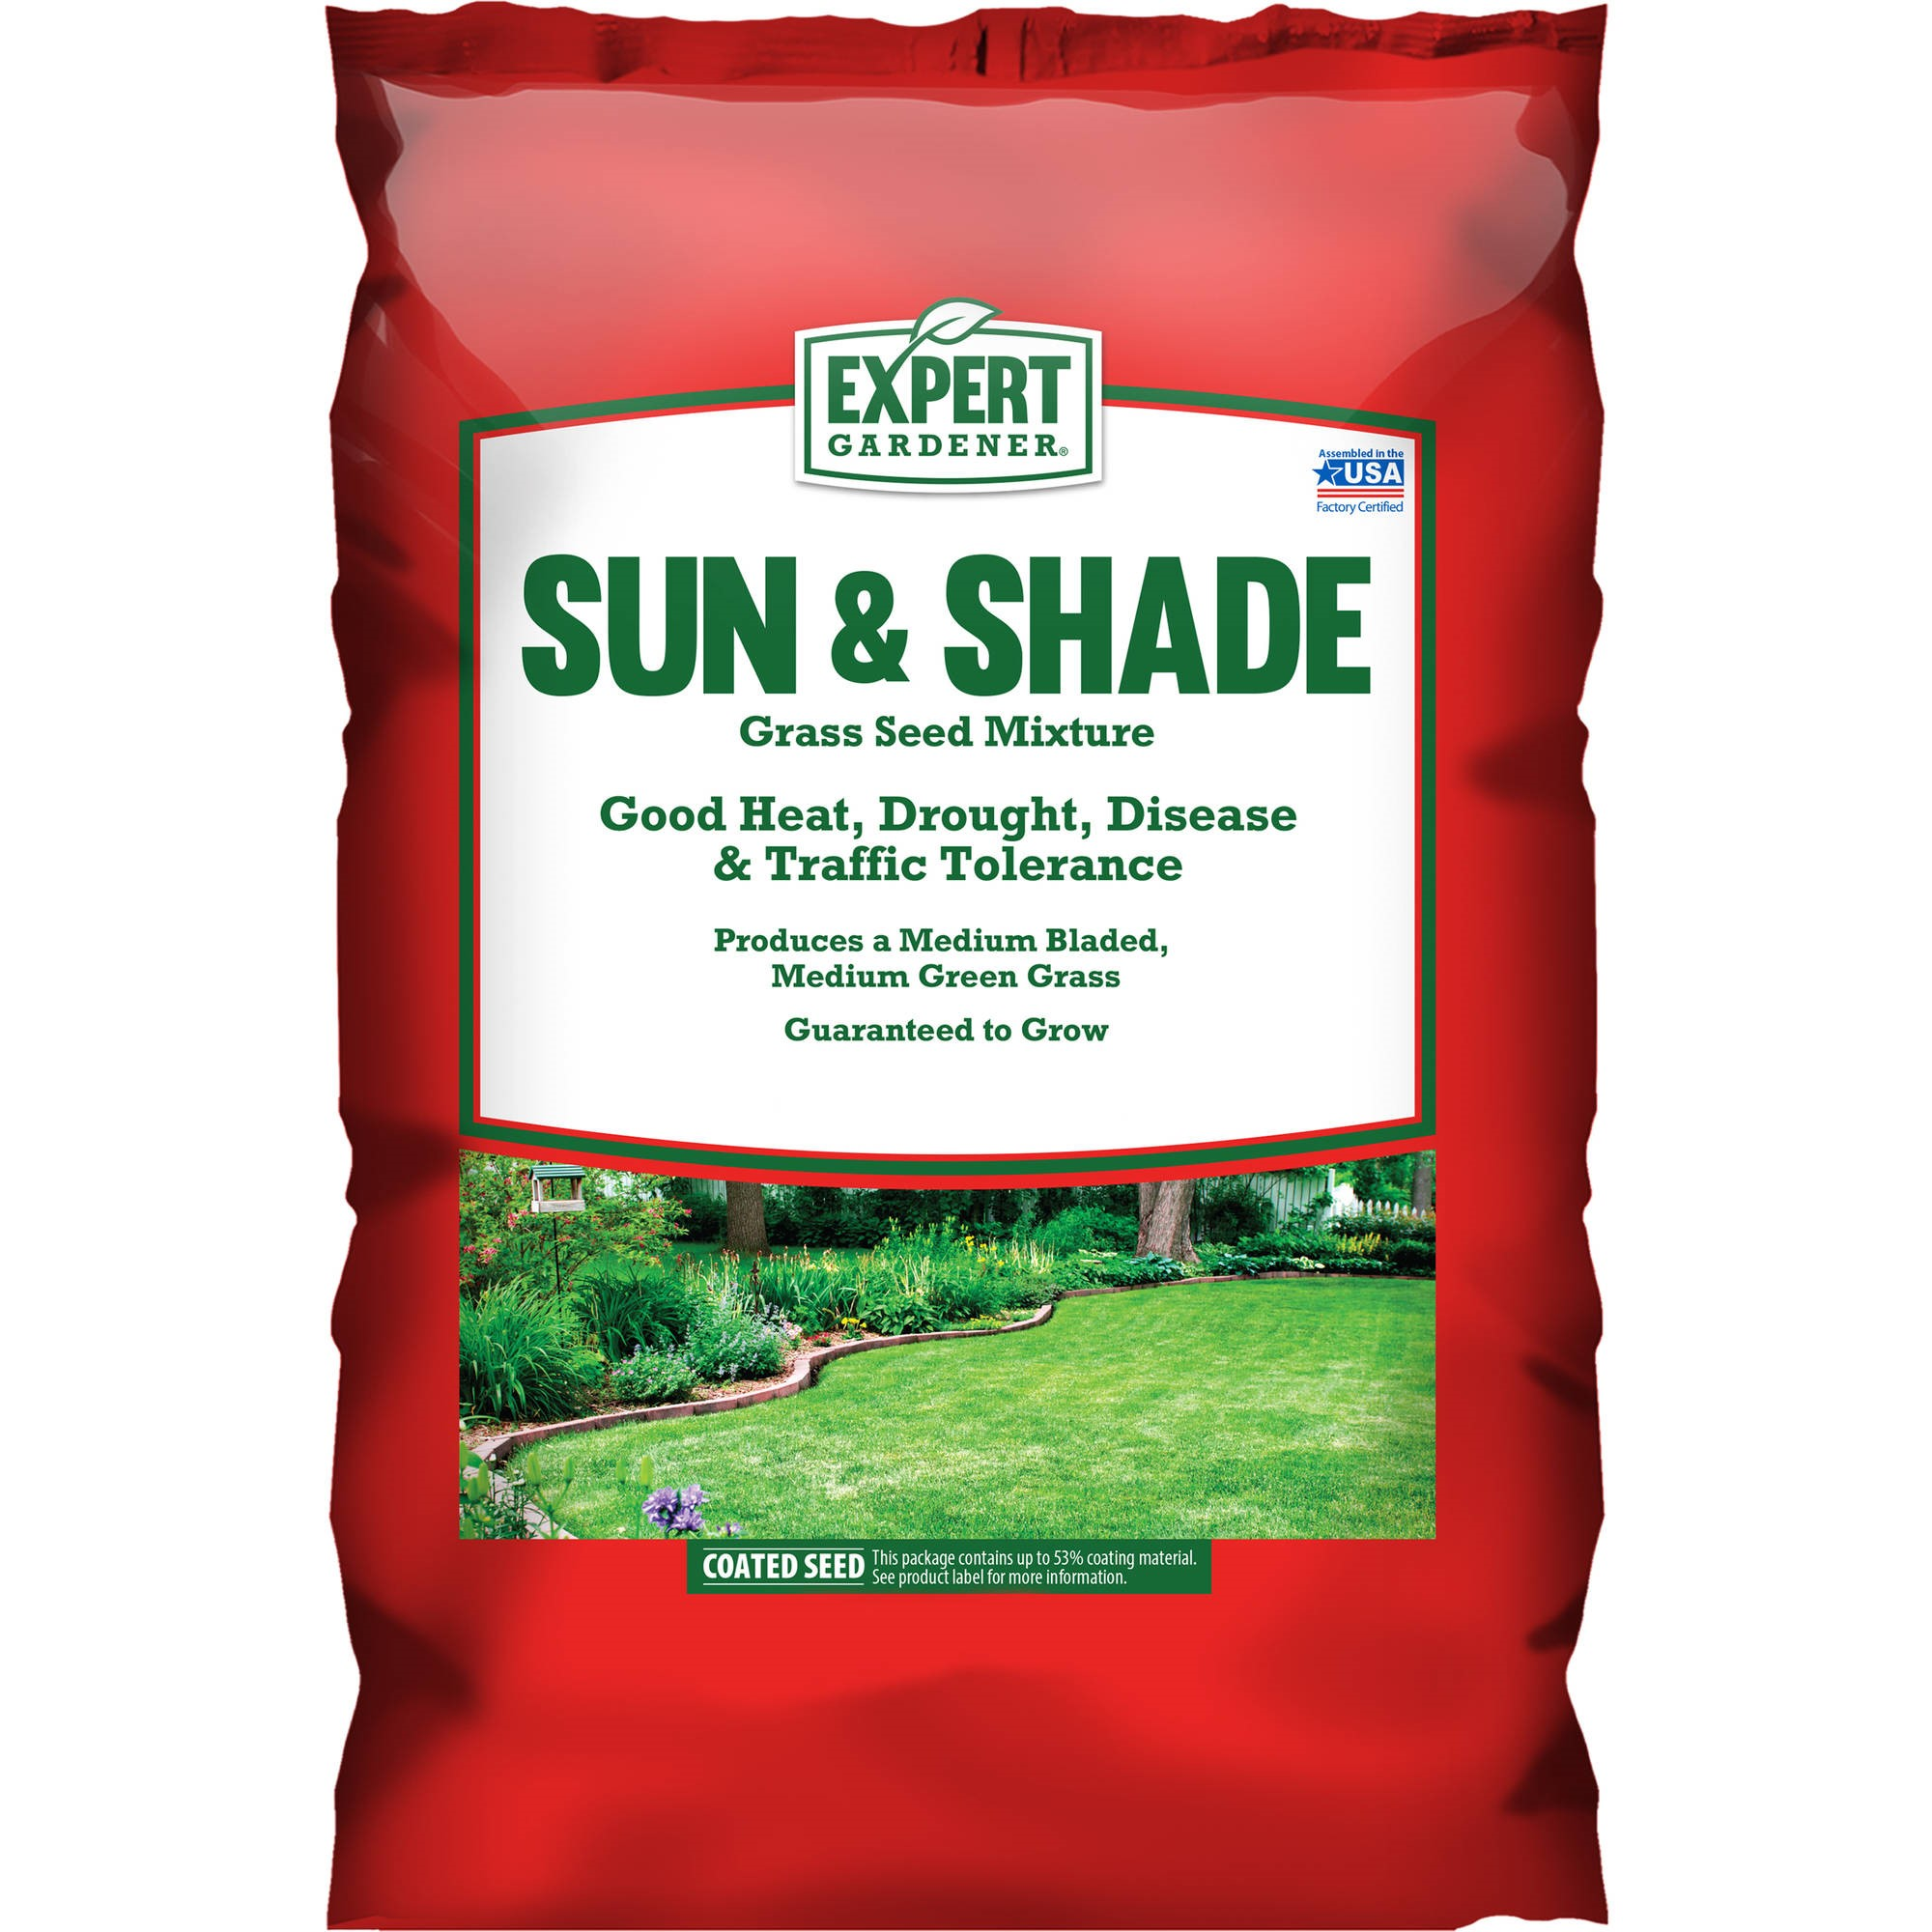 Gardene Expert Gardener Sun And Shade Grass Seed North 7 Pounds Covers Up To 1 750 Square Feet